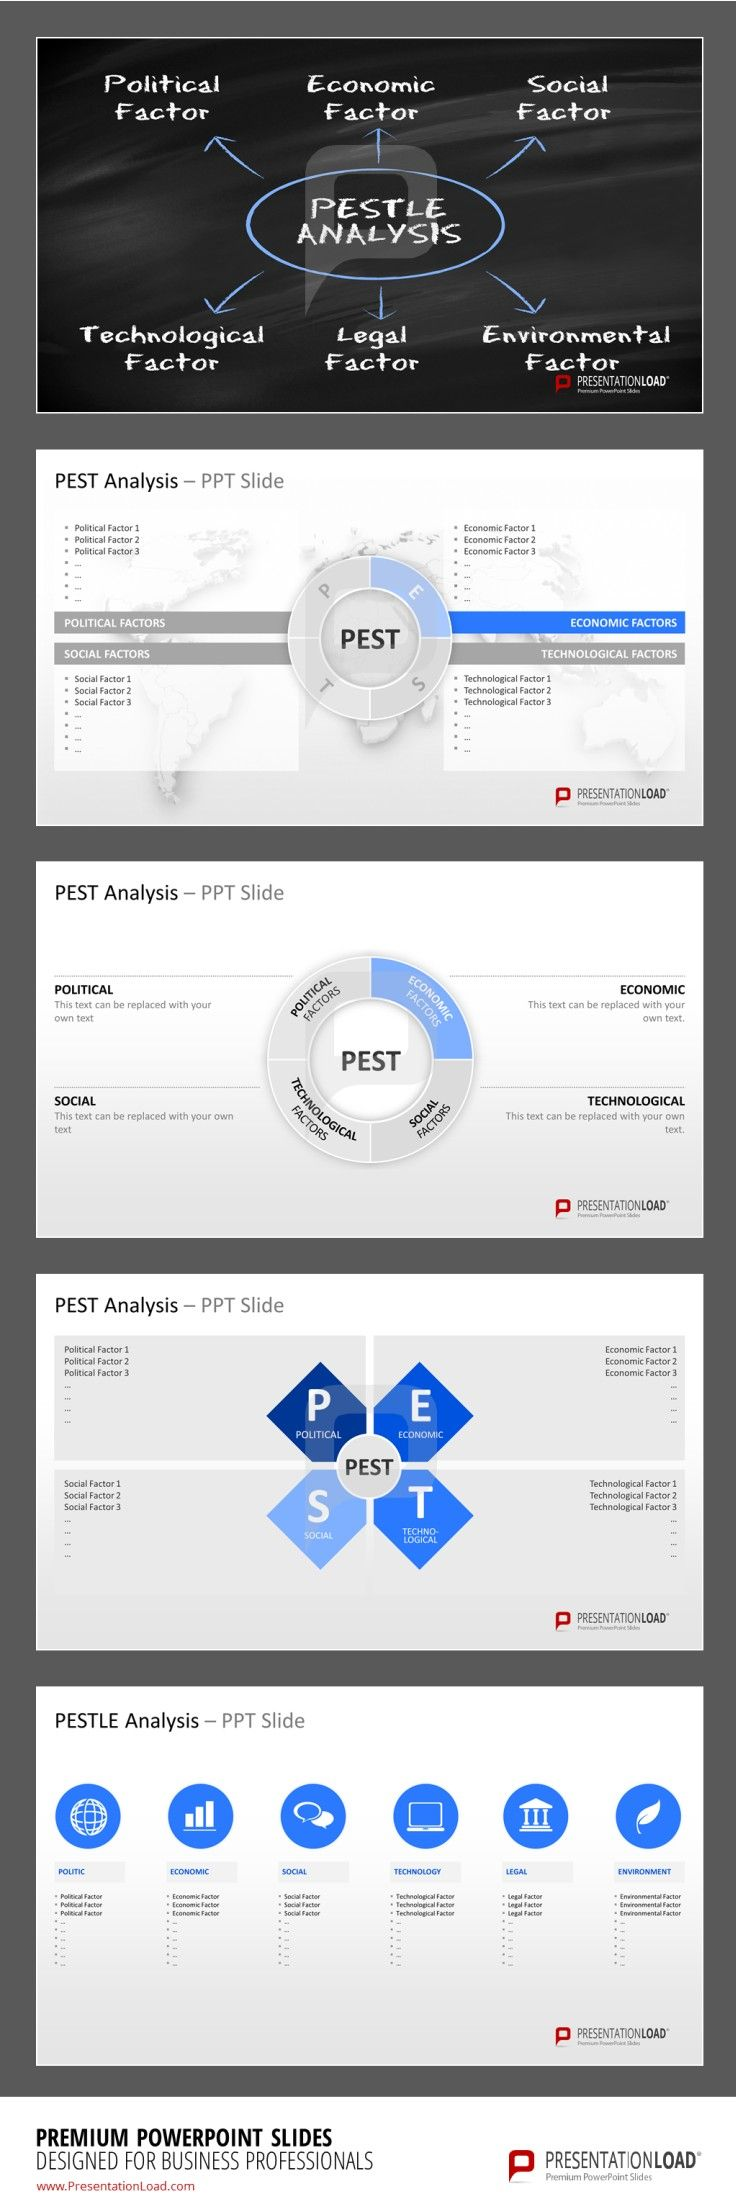 Pestel analysis powerpoint template political economic social and pestel analysis powerpoint template political economic social and technological analysis is a toneelgroepblik Image collections